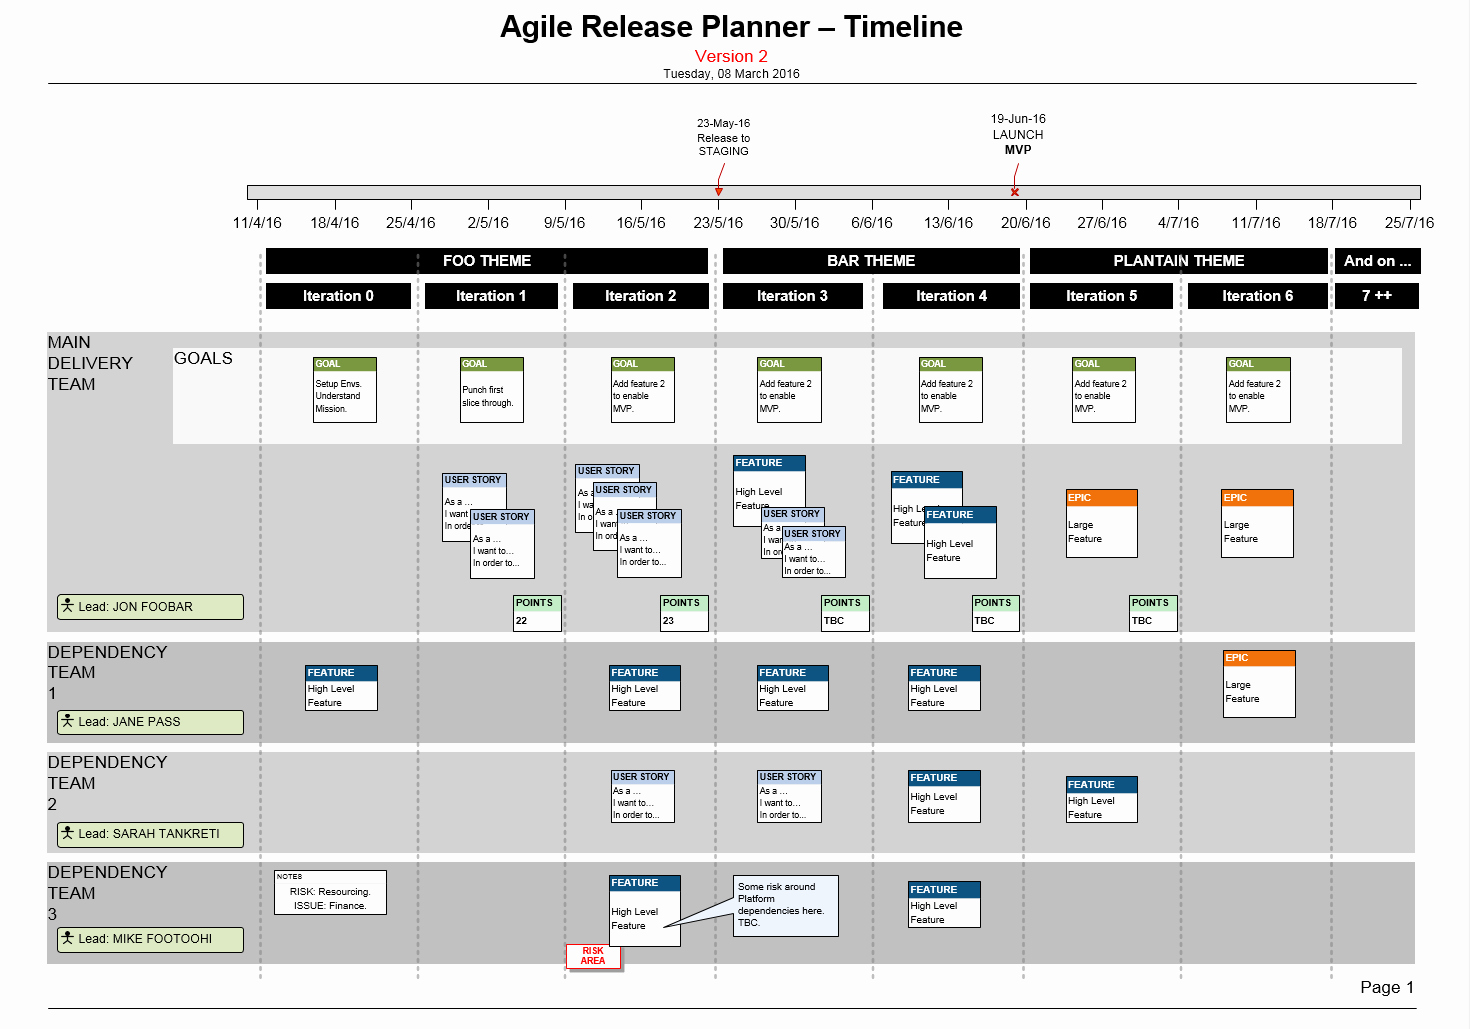 Agile Release Plan Template Unique Visio Agile Release Plan for Scrum Teams Story Map & Mvp